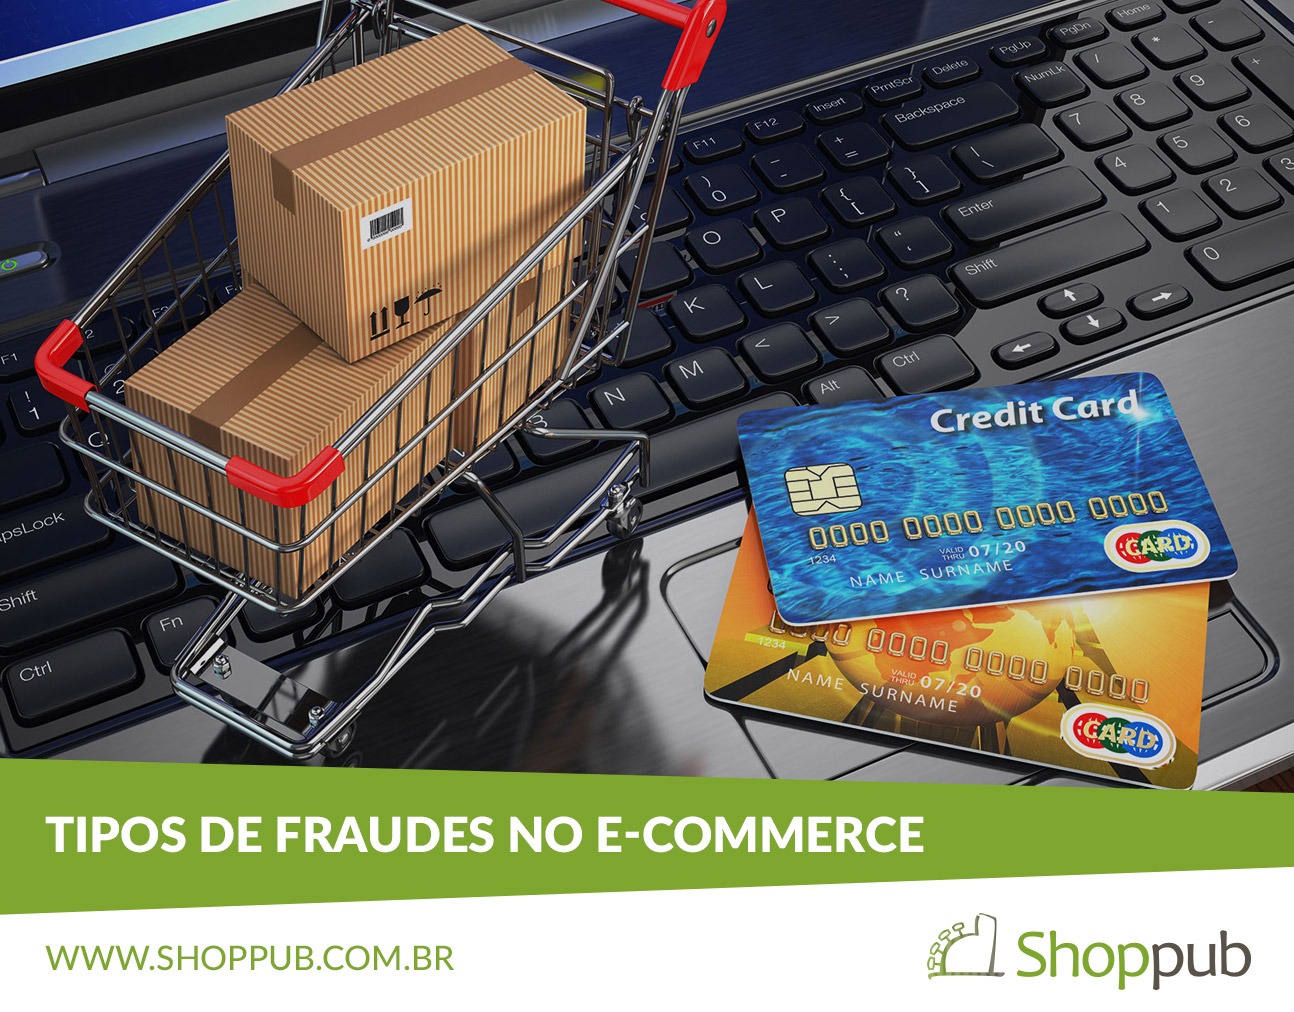 Tipos de fraudes no e-commerce